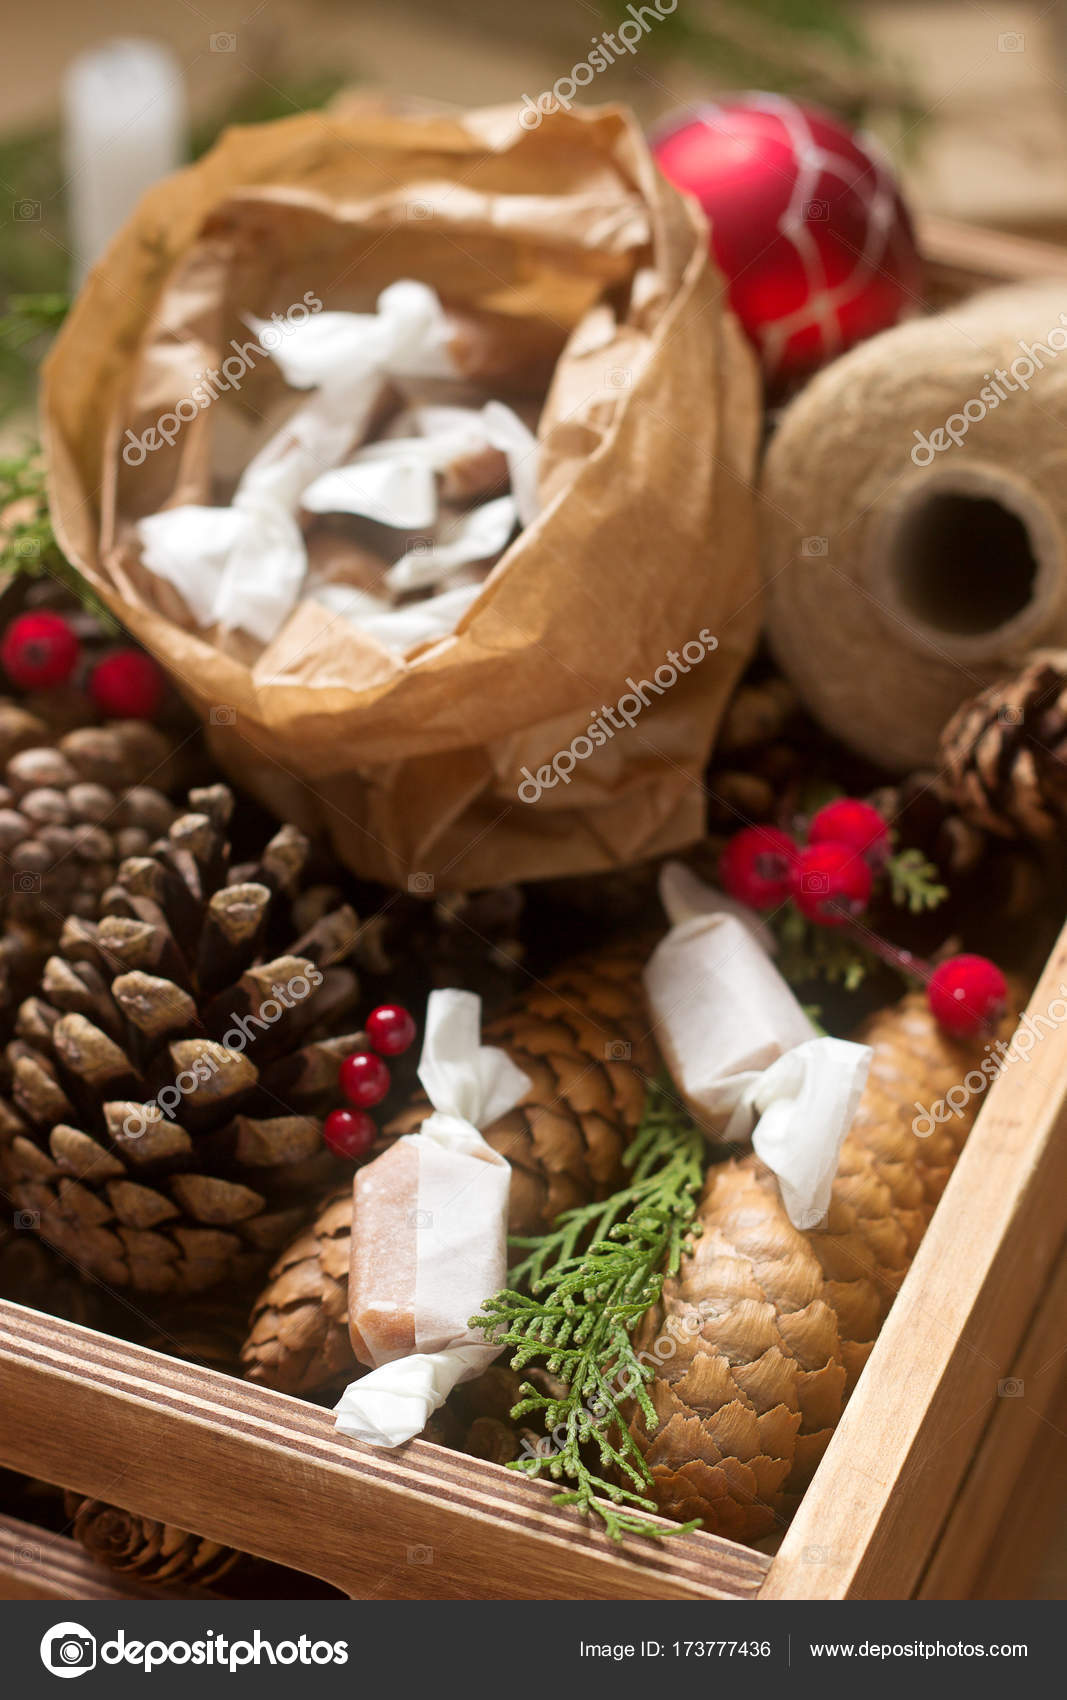 Gifts and homemade toffee in Christmas decorations. Rustic style. — Stock Photo